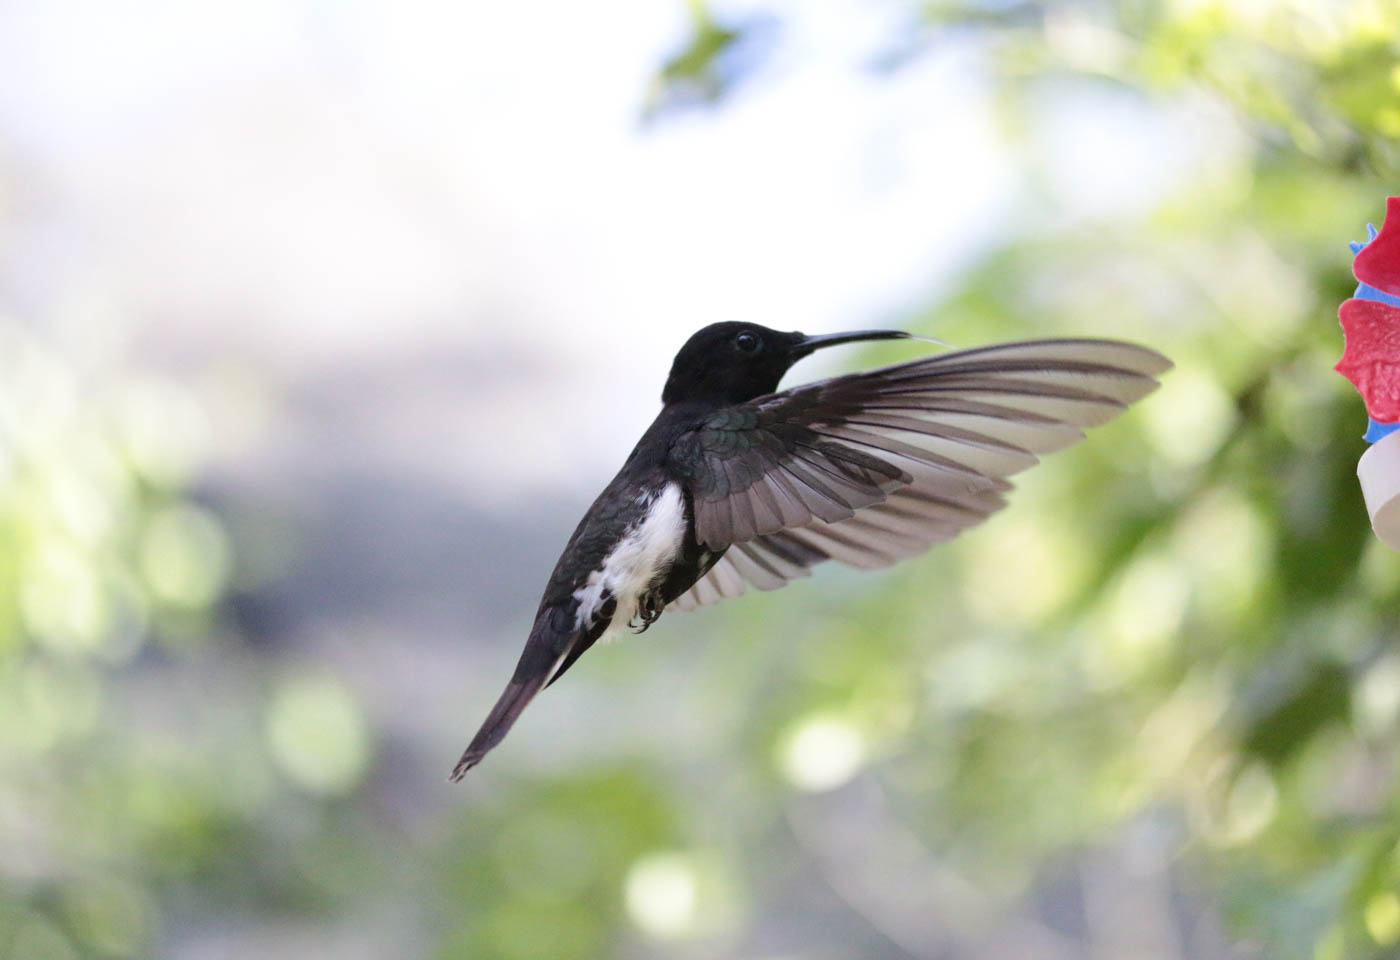 Bird in flight taken with Canon EOS 70D DSLR camera